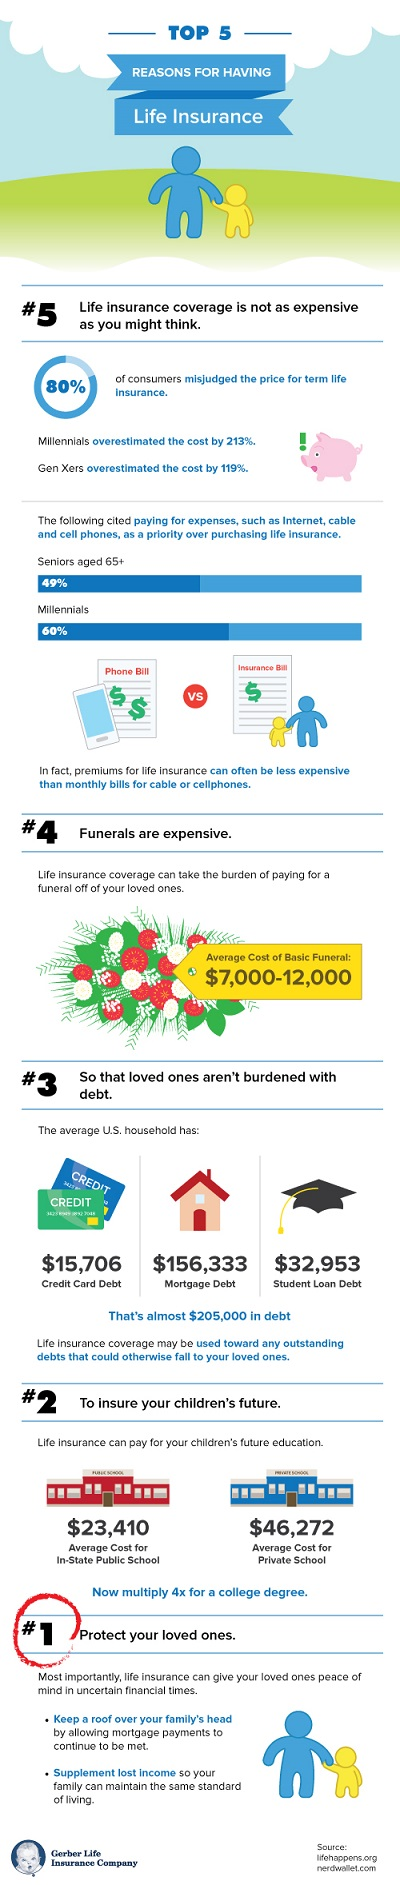 life insurance reasons infographic